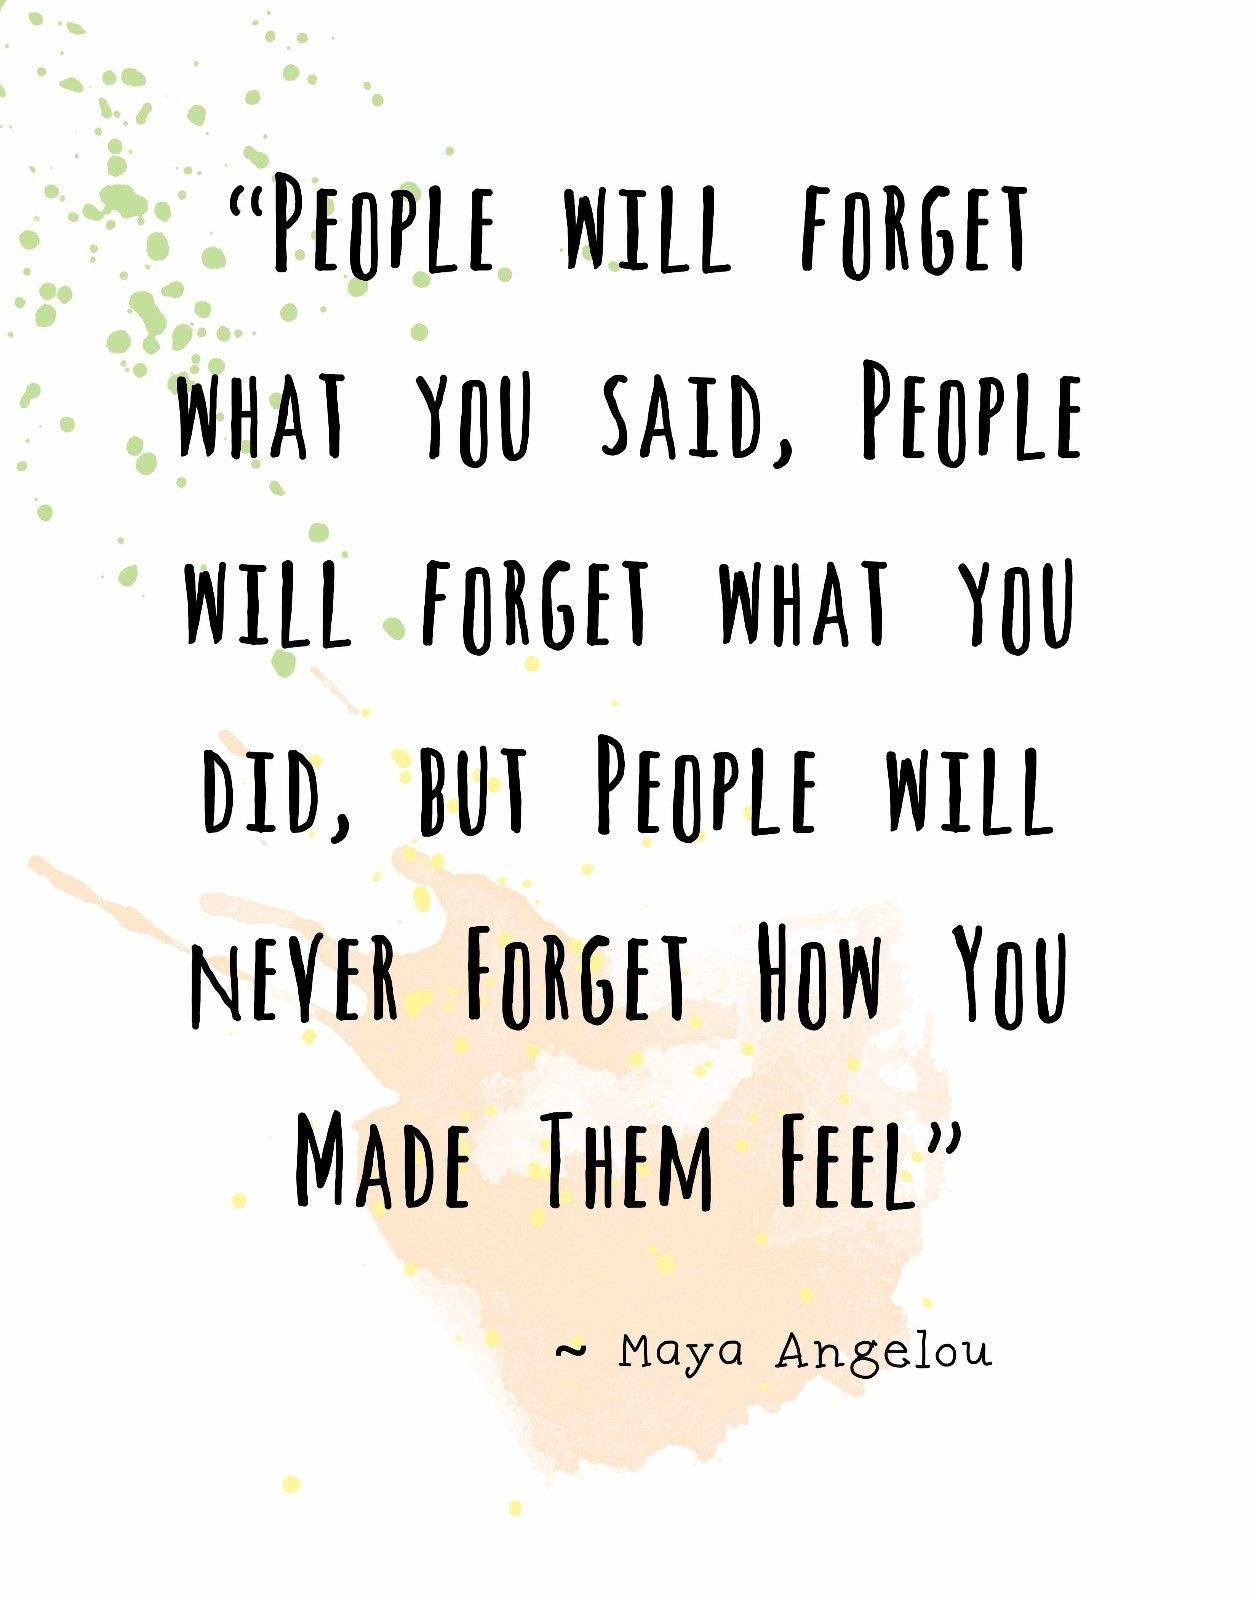 Details About Maya Angelou Quote Decorative Wall Art Print